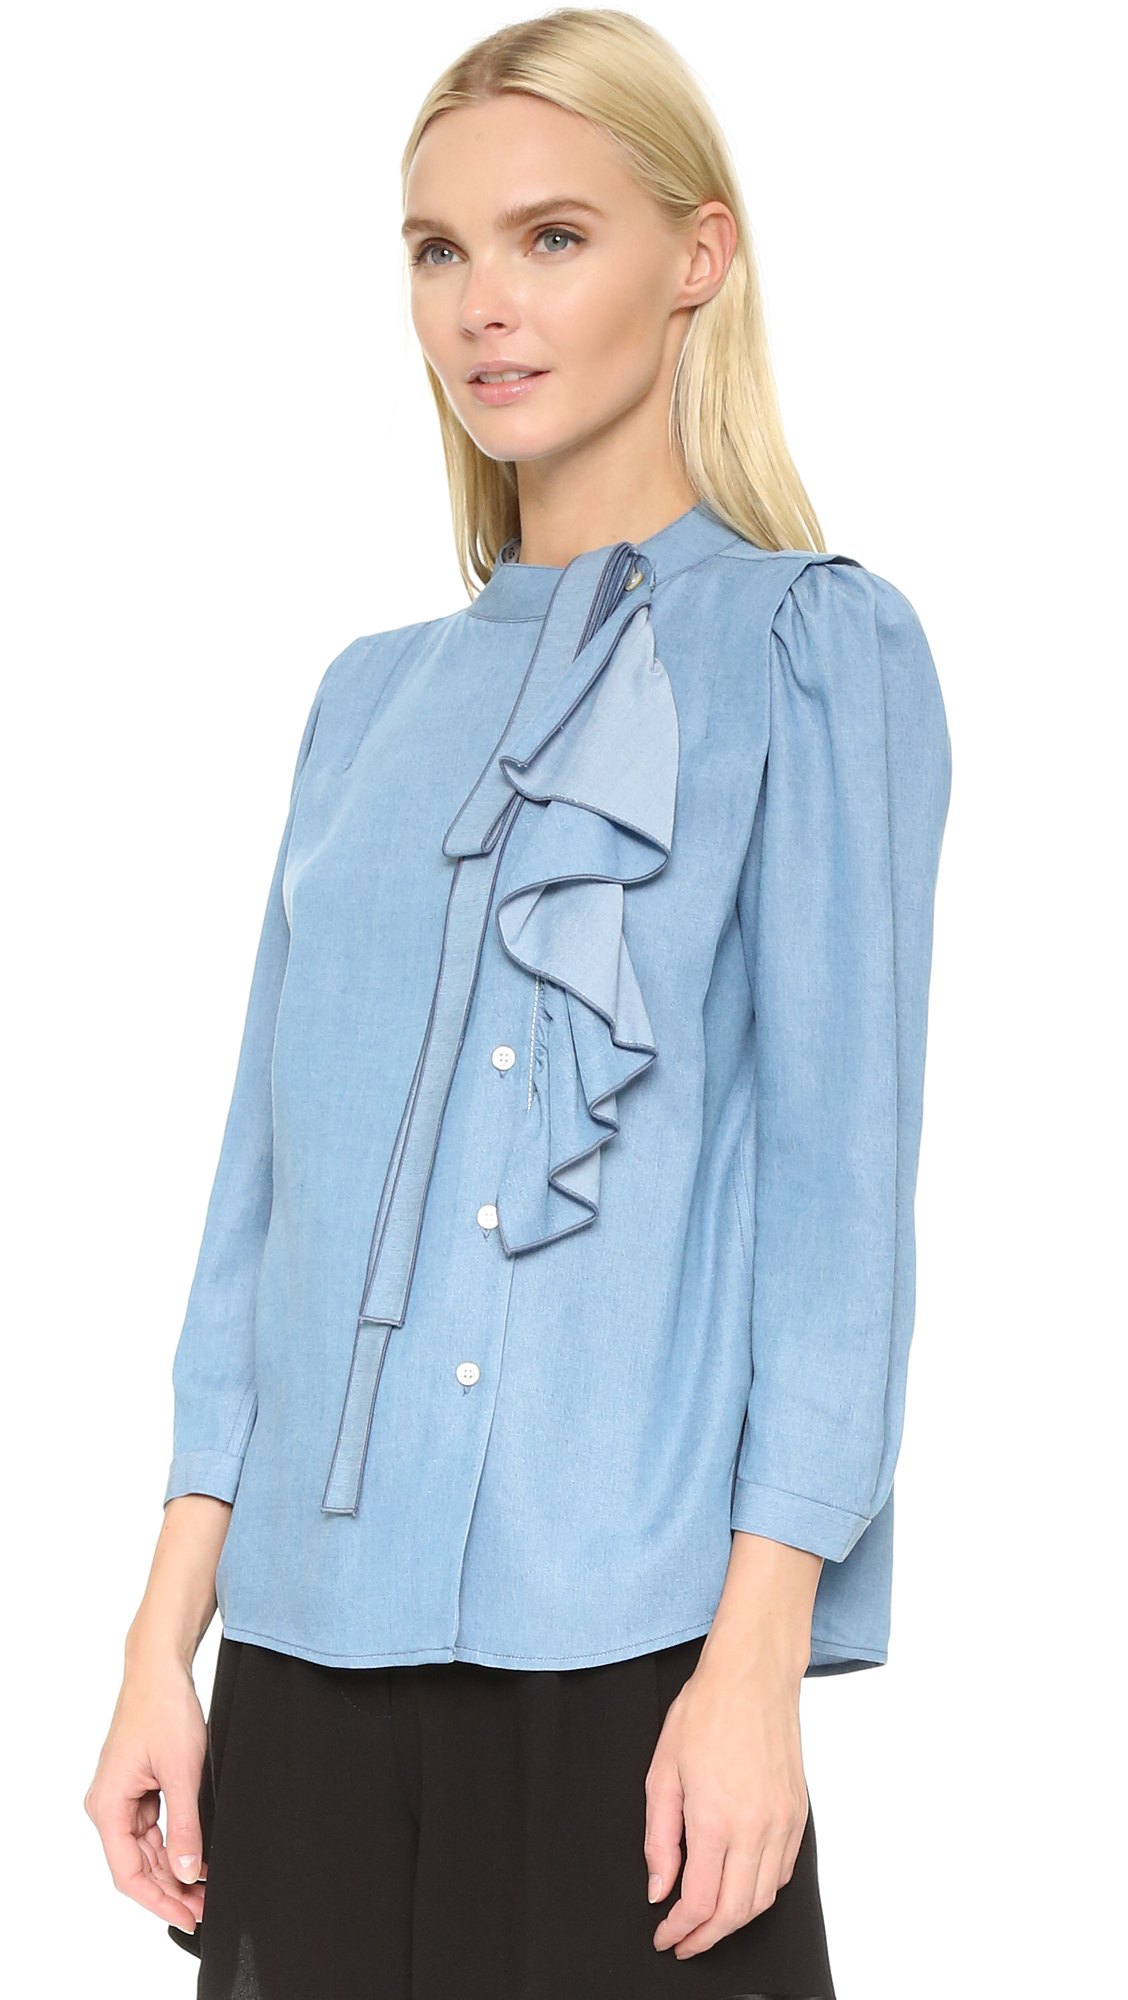 Cheap Outlet Store Under 70 Dollars Blue Ruffle Sleeves Shirt Marc Jacobs zO65E